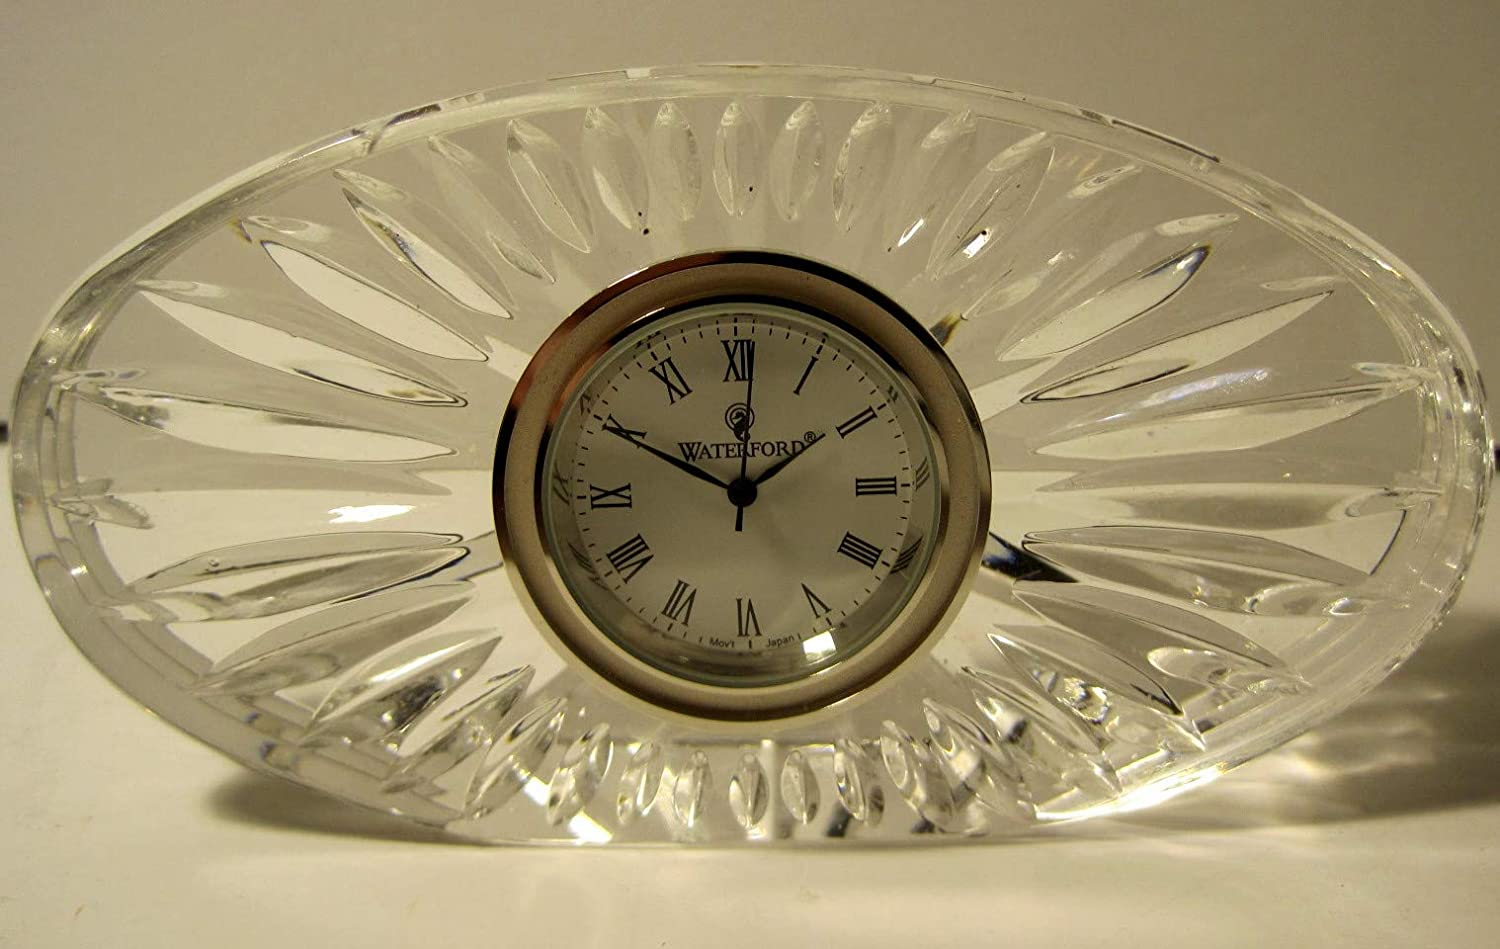 Waterford Crystal Desk Clock, 5 Inch Oval, Quartz Movement